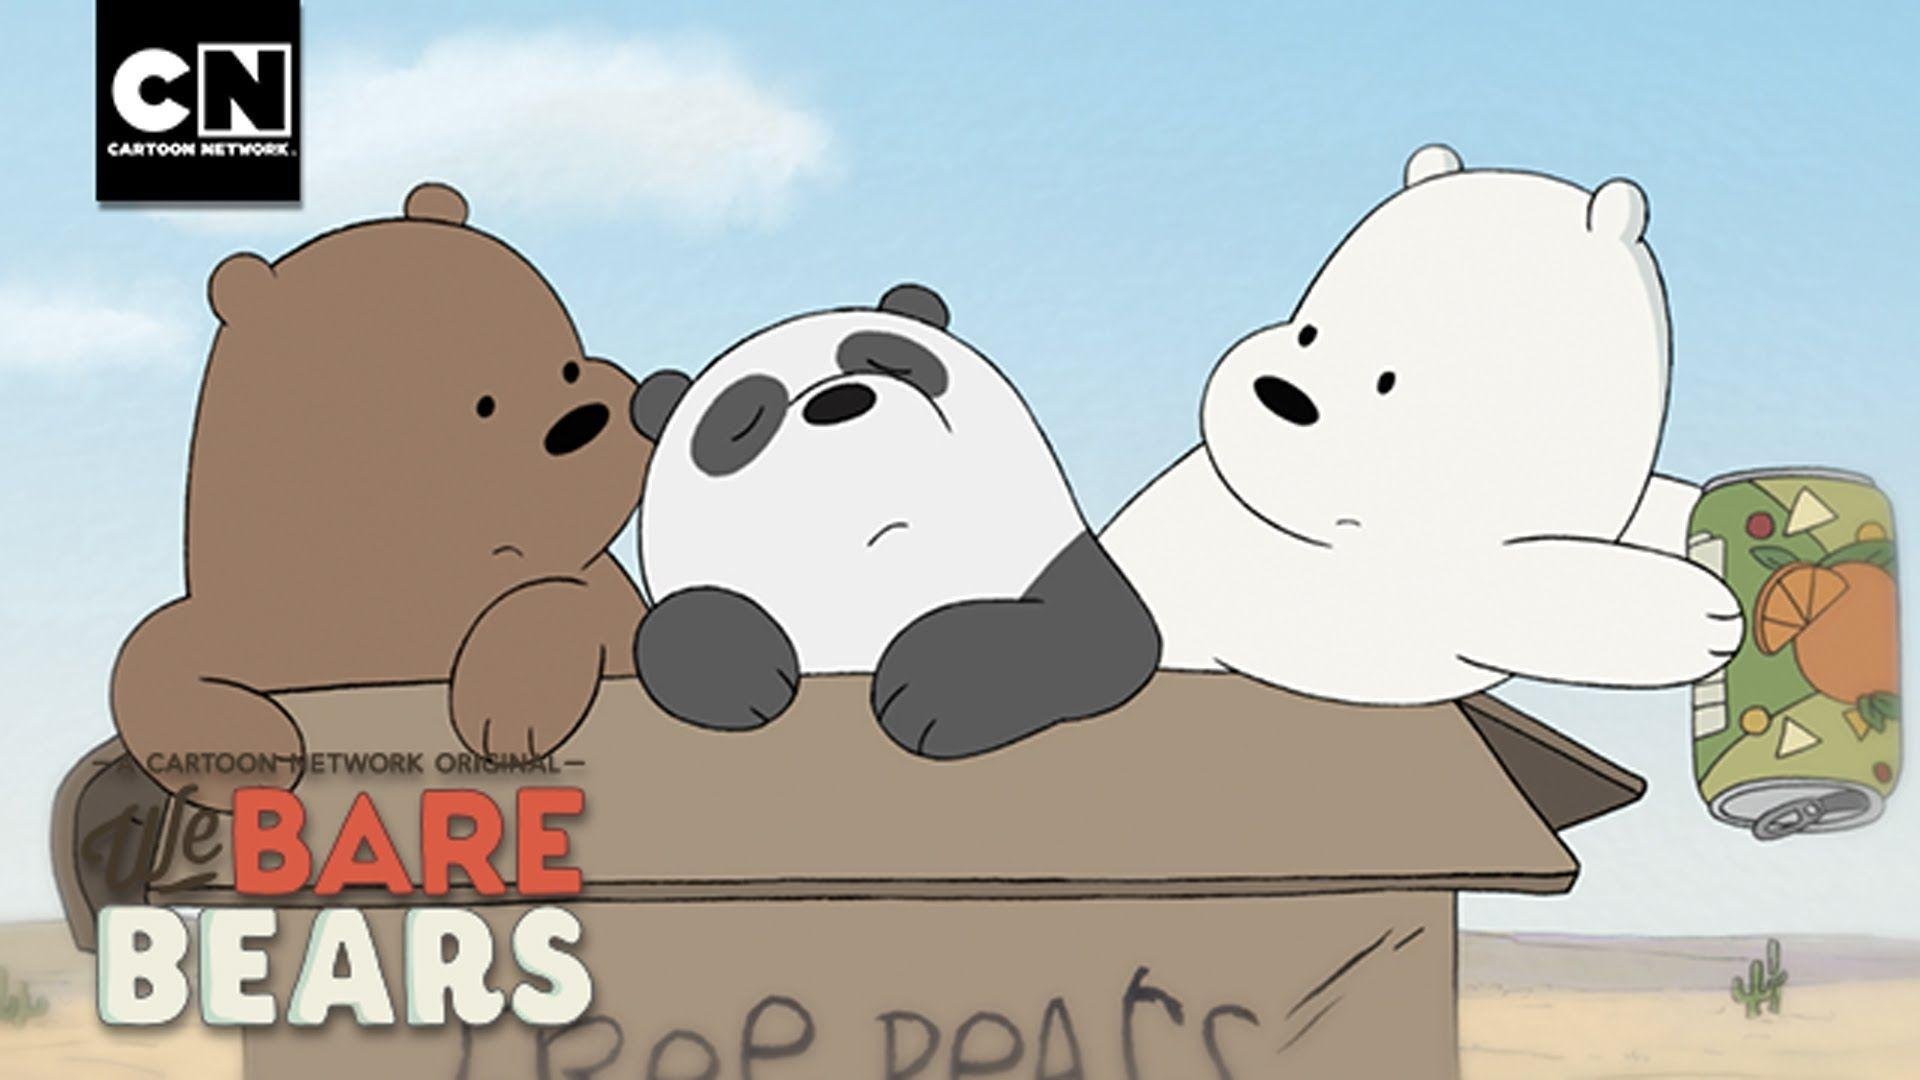 17 Best images about We Bare Bears on Pinterest | Panda bears ...